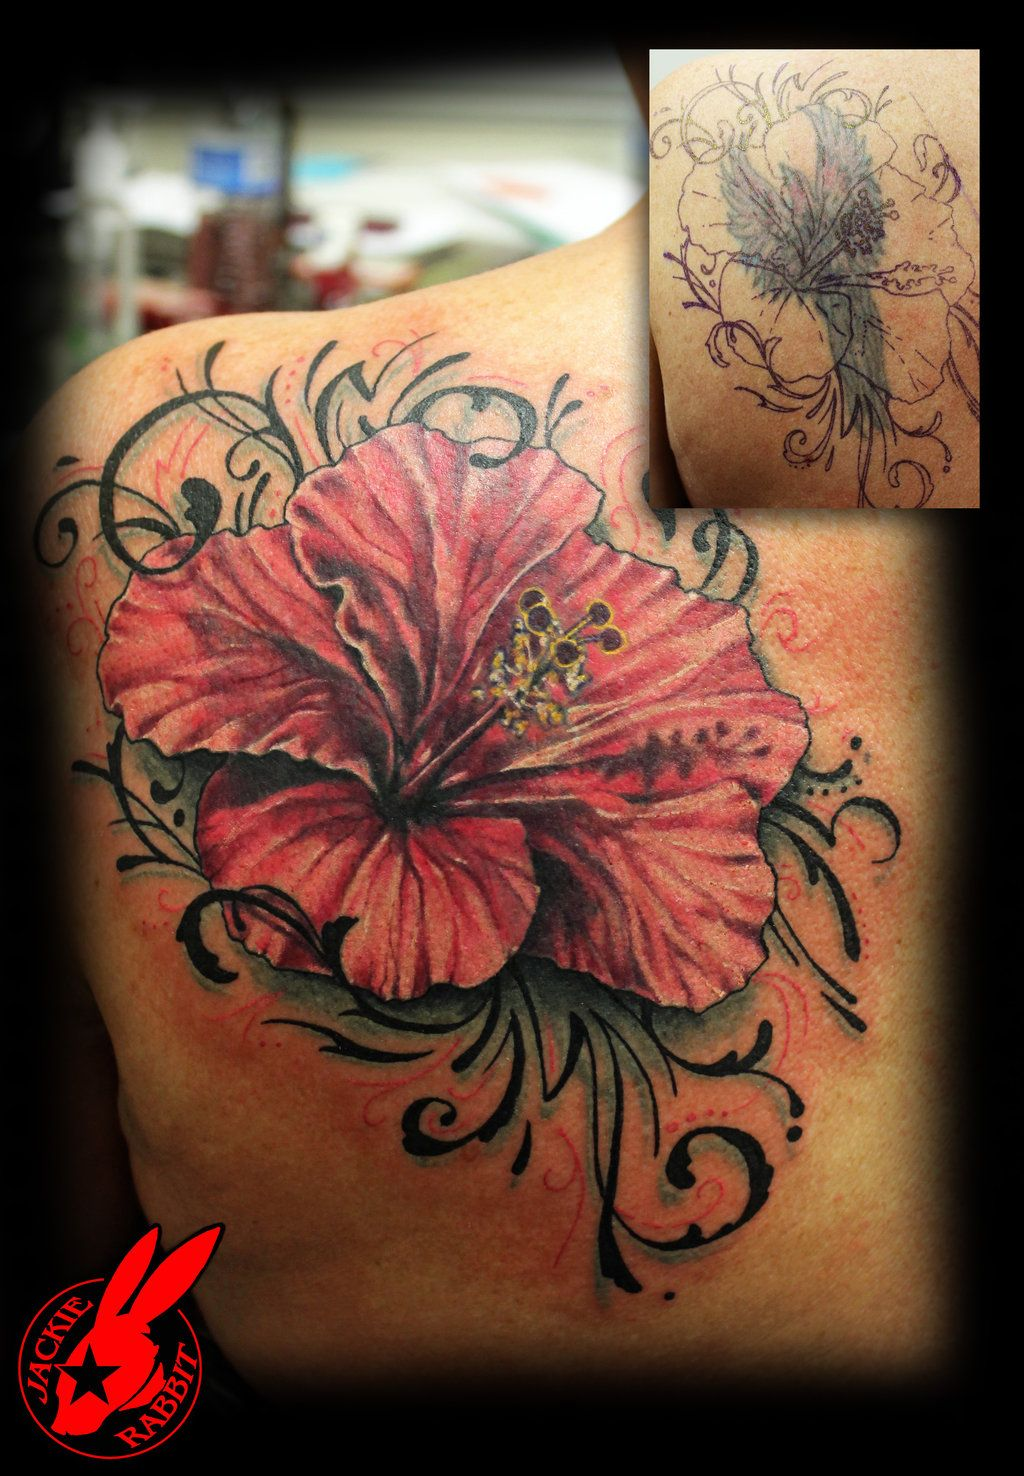 Peacock flower tattoo designs - Flower Tribal Cover Up Tattoo By Jackie Rabbit By Jackierabbit12 Deviantart Com On